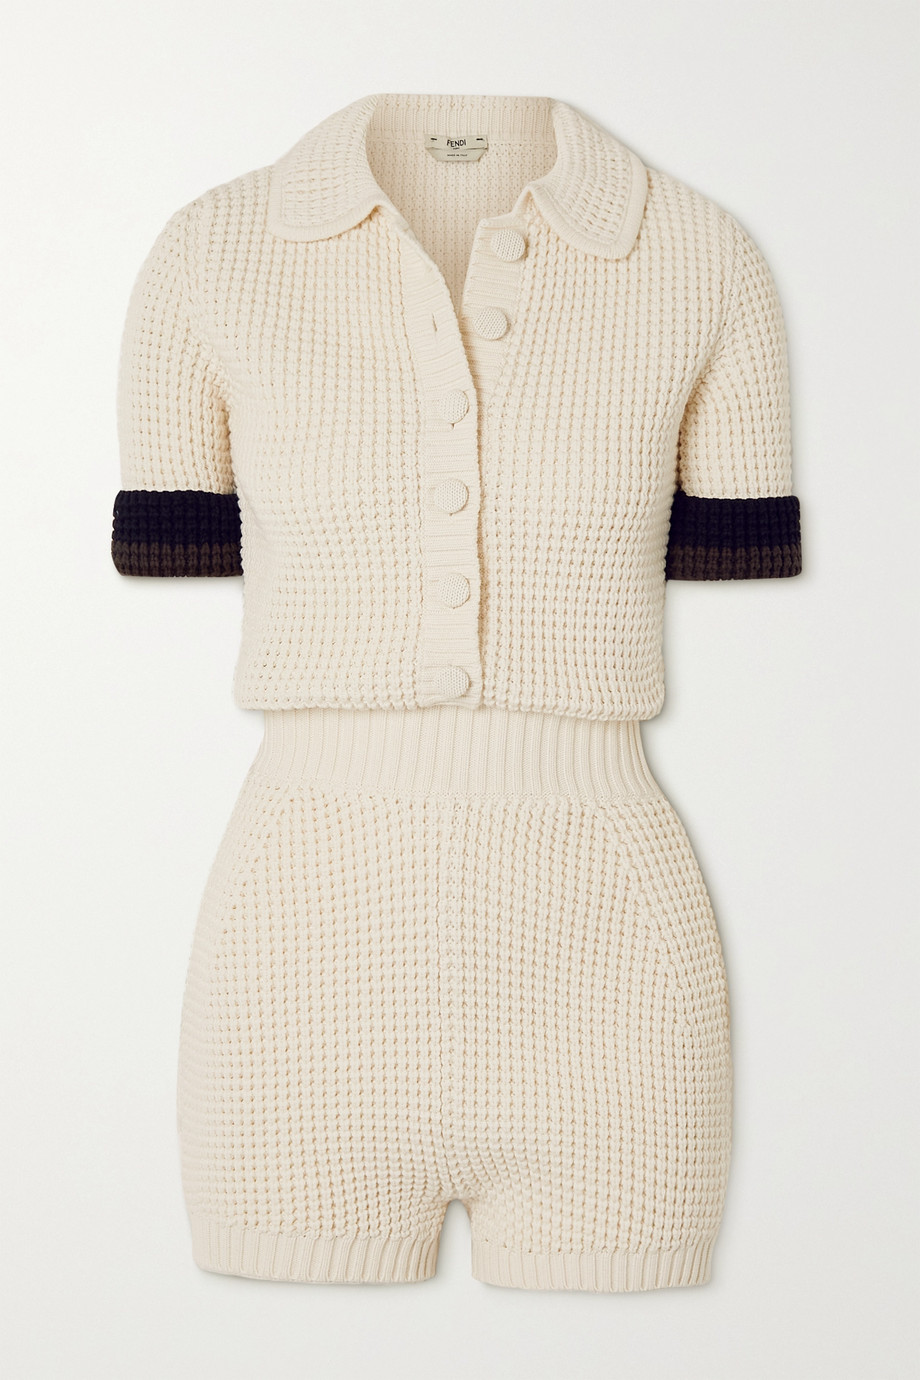 FENDI Striped knitted playsuit